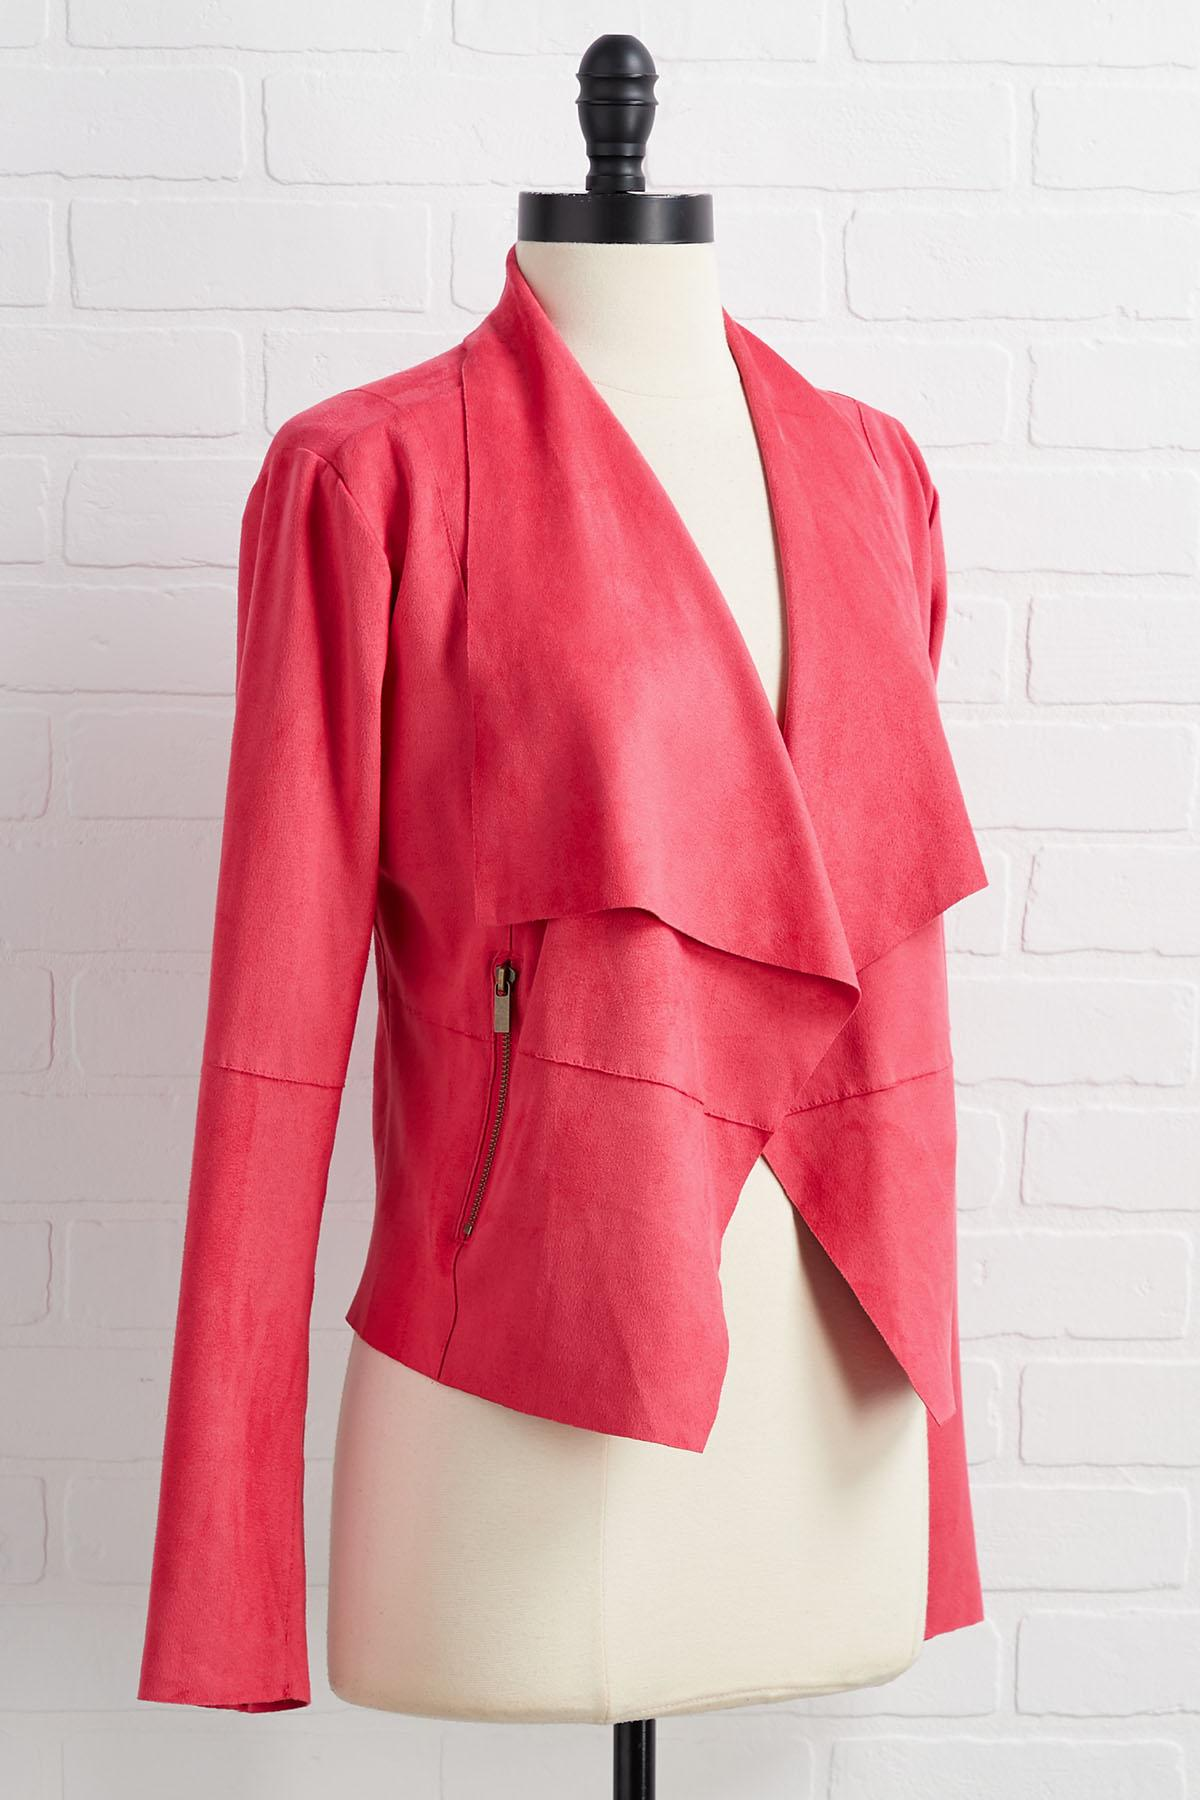 Softly Speaking Jacket